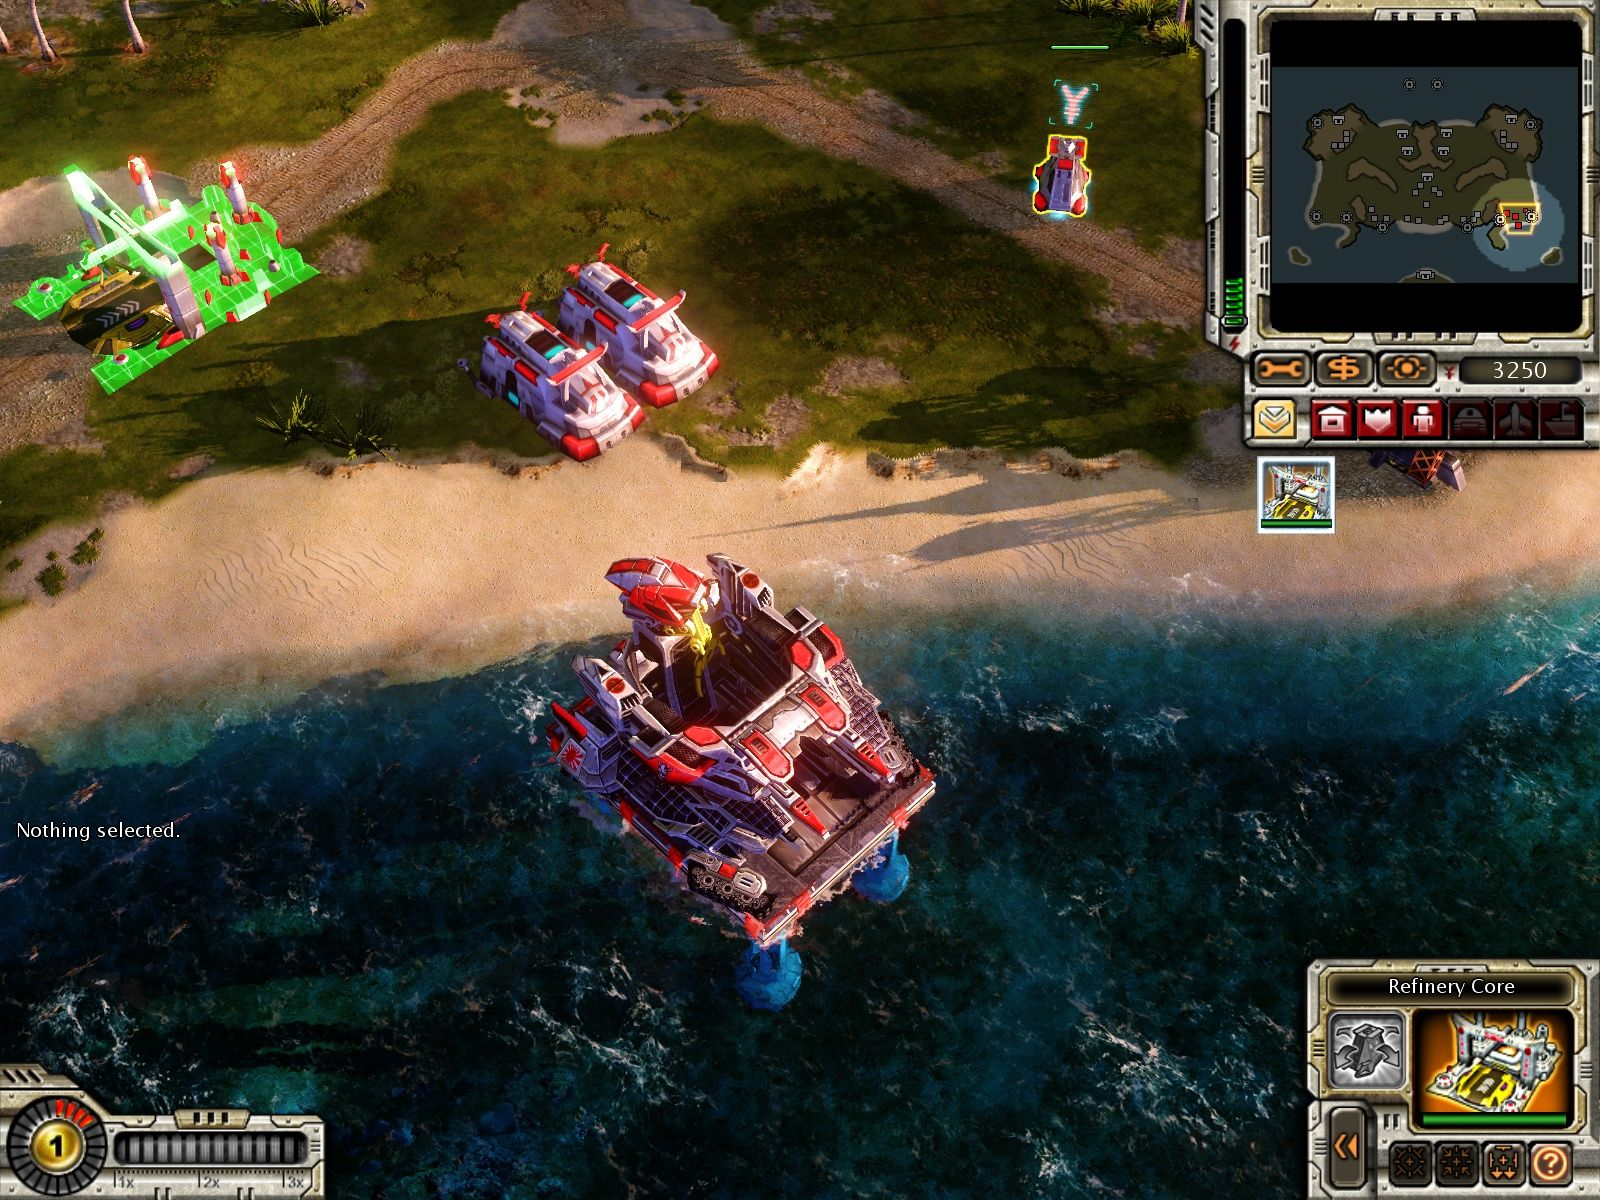 Command & Conquer: Red Alert 3 Windows Meet the Empire of the Rising Sun.